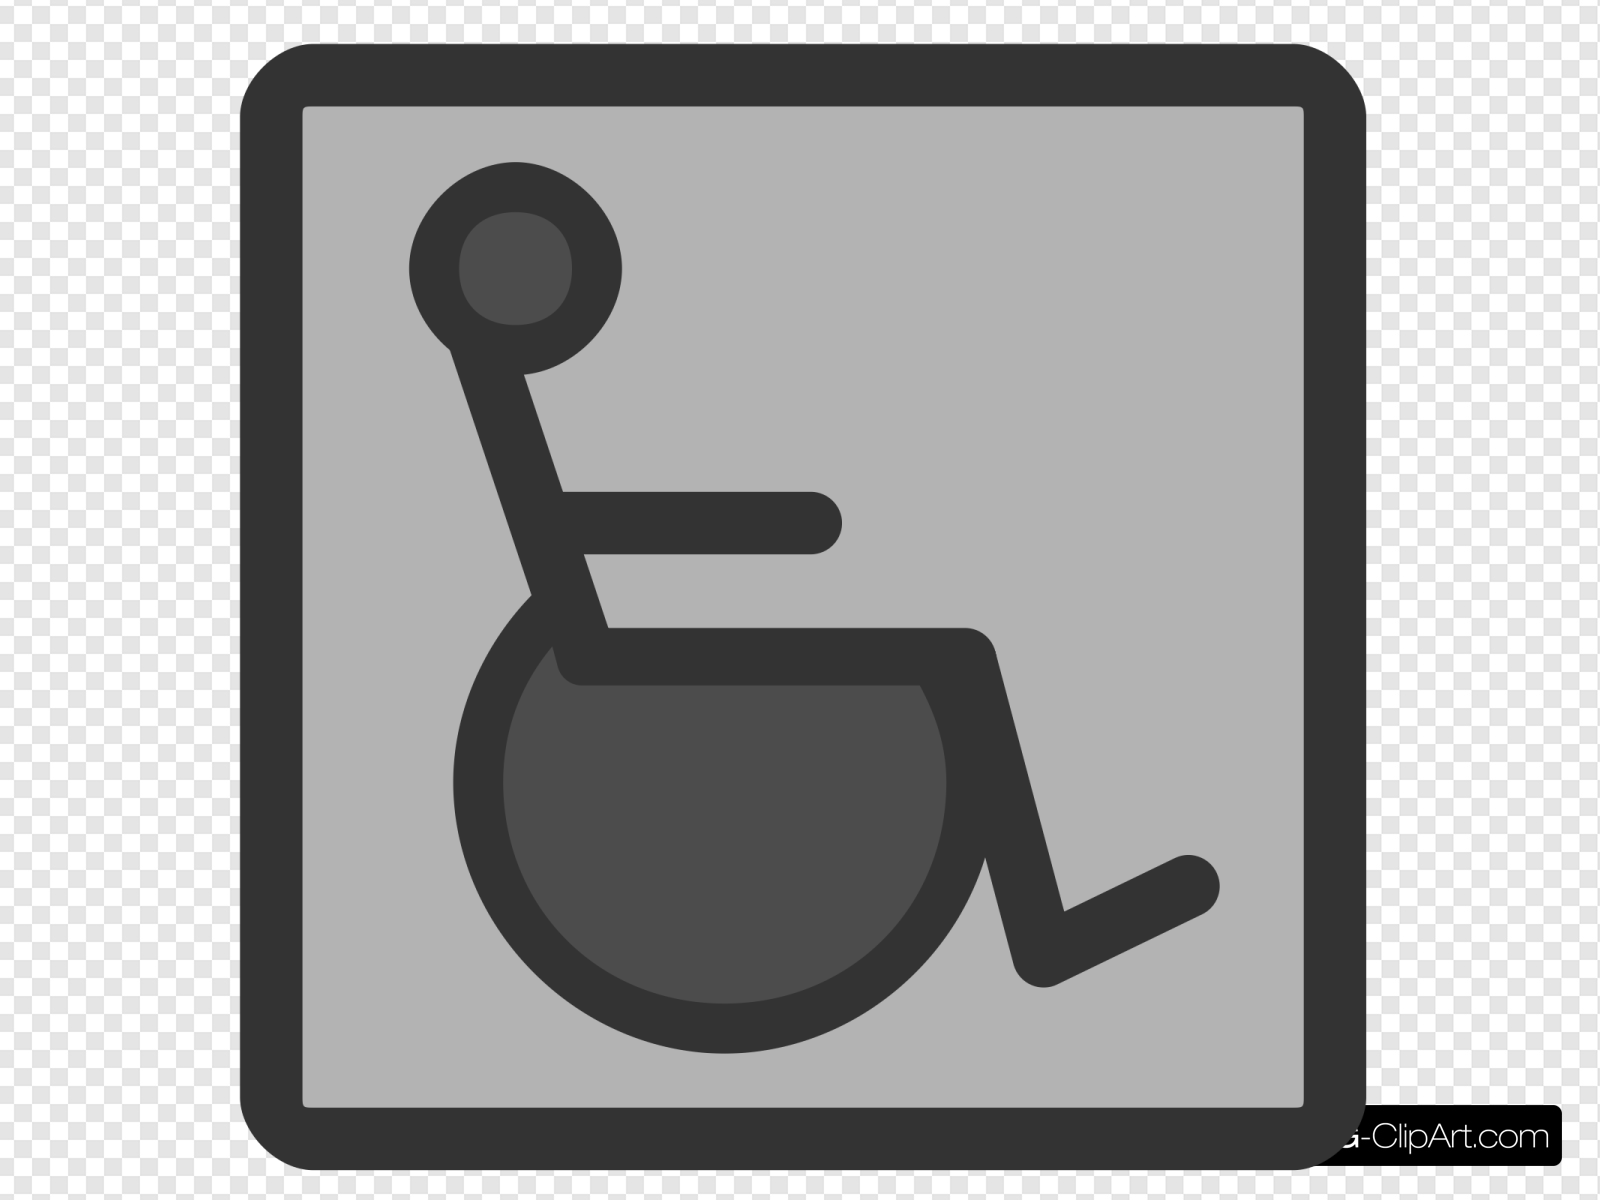 Handicap Accessibility Clip art, Icon and SVG.